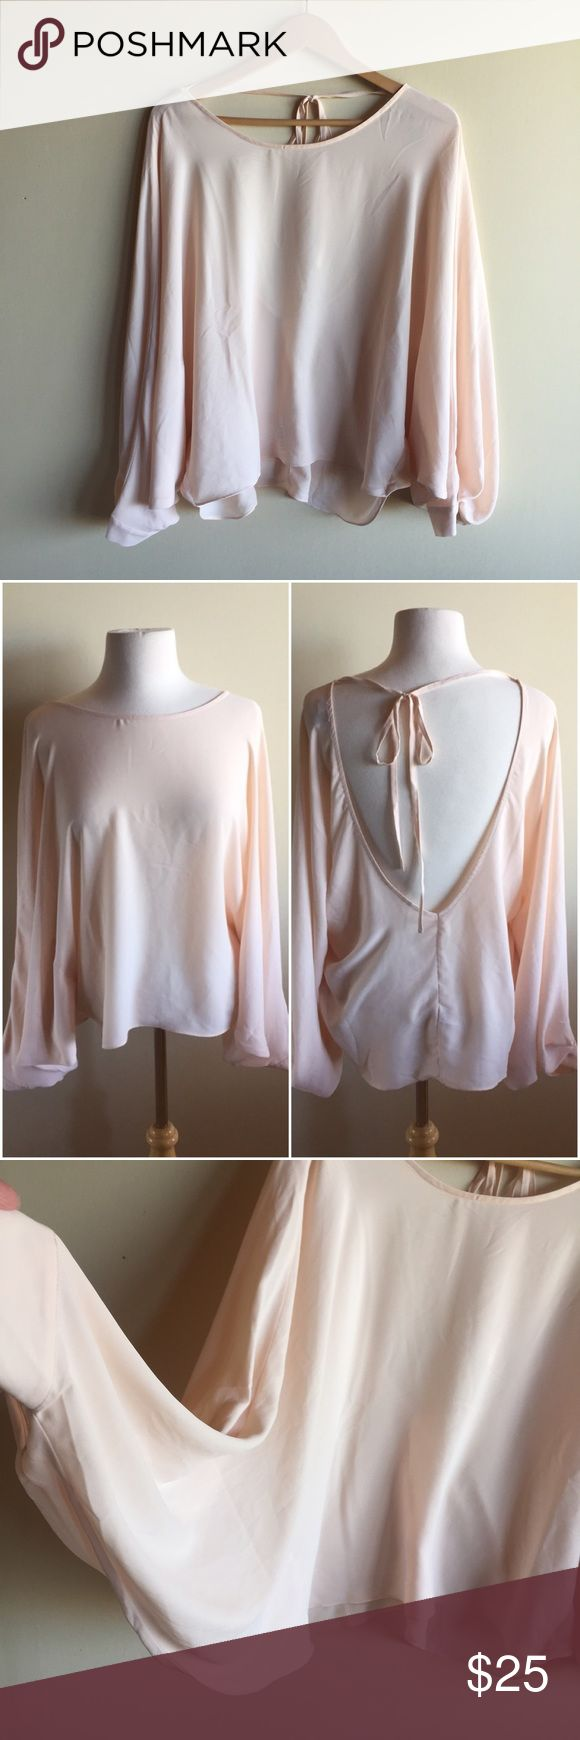 """ASOS blush pink batwing top with open back Gorgeous top in pale pink with an open back. Measures 27"""" long. Semi sheer. Great condition! ASOS Tops Blouses"""